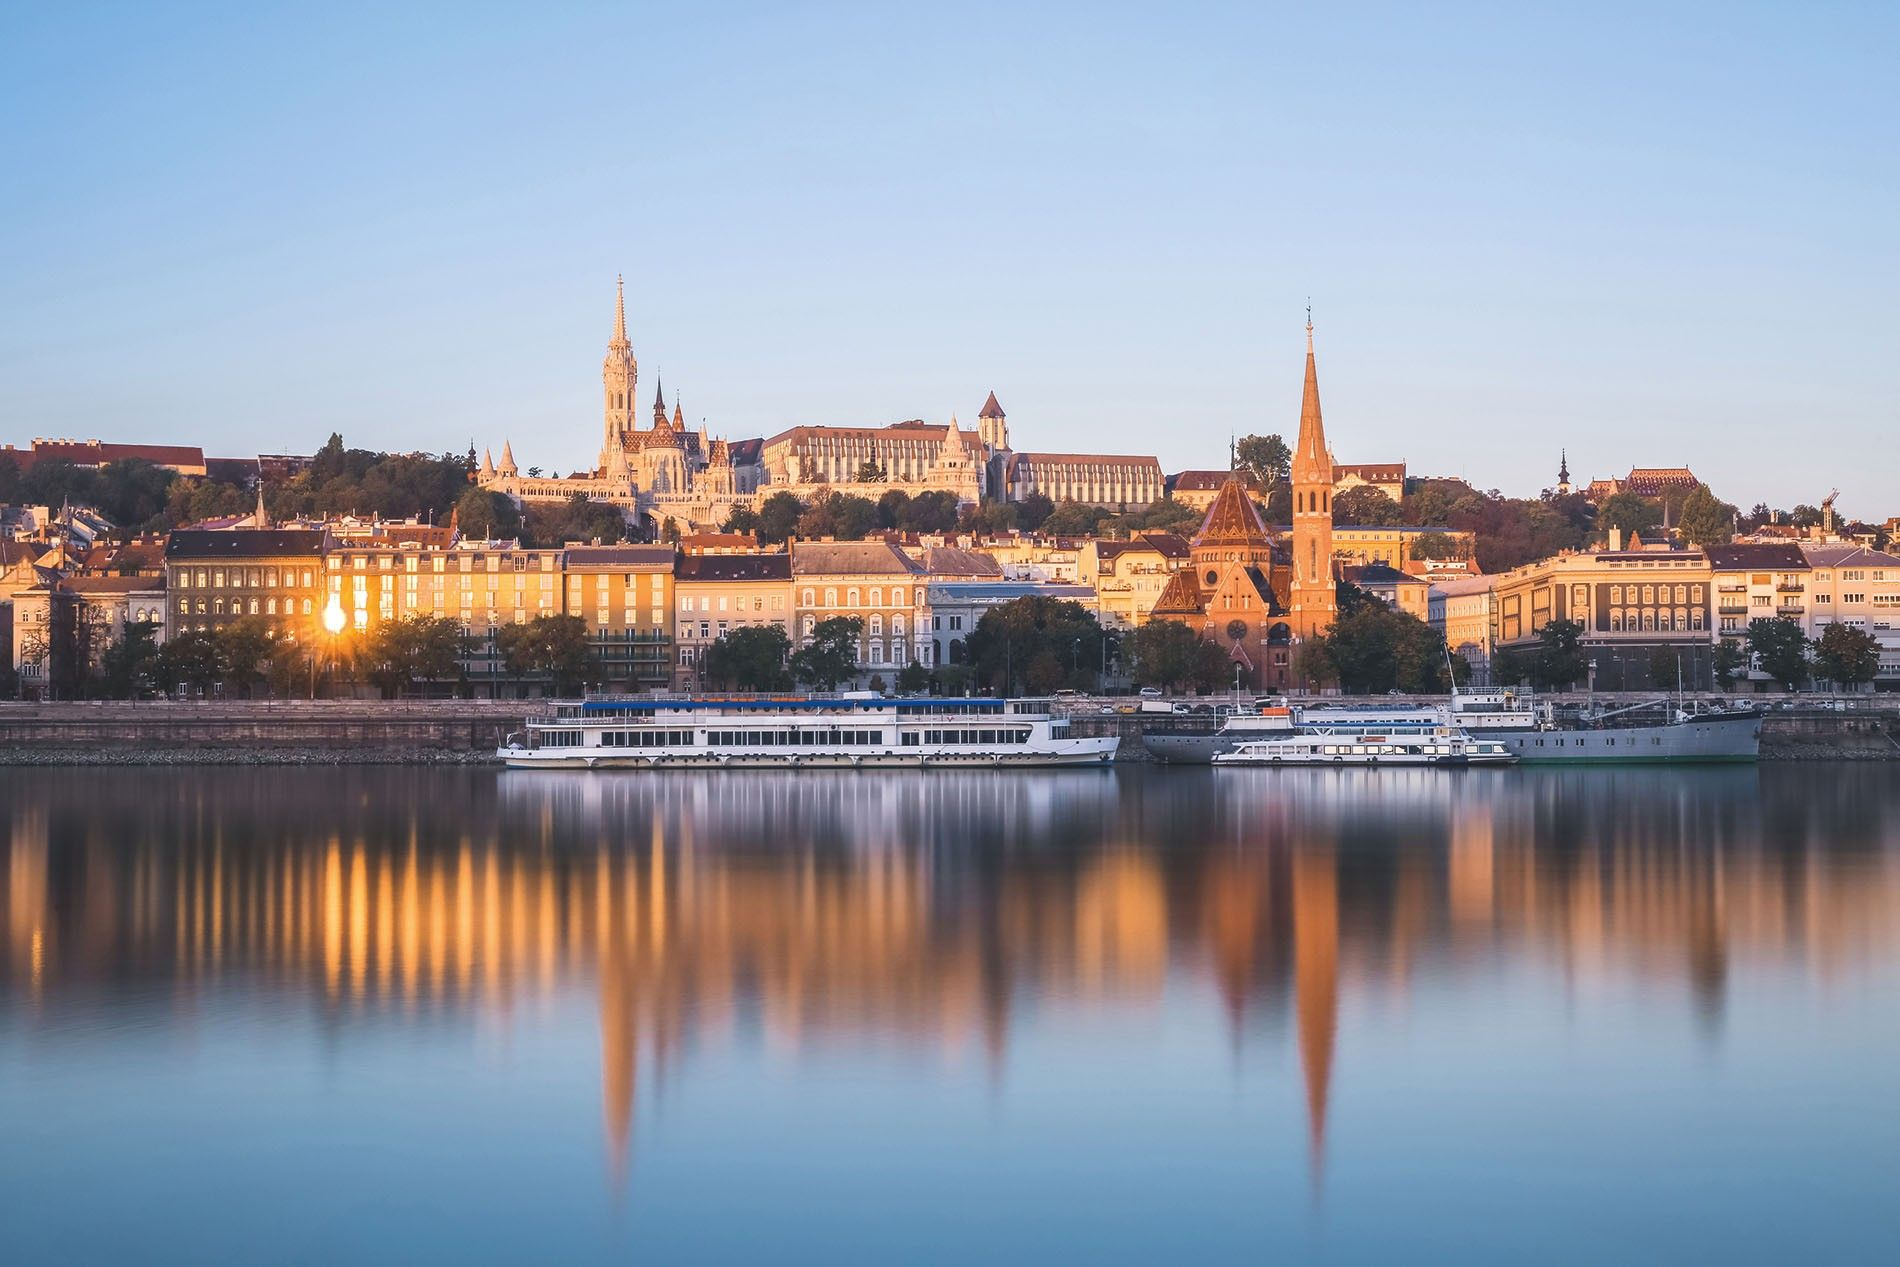 Straddling the Danube, Budapest is a hotspot for river cruises and one of the stops on ...